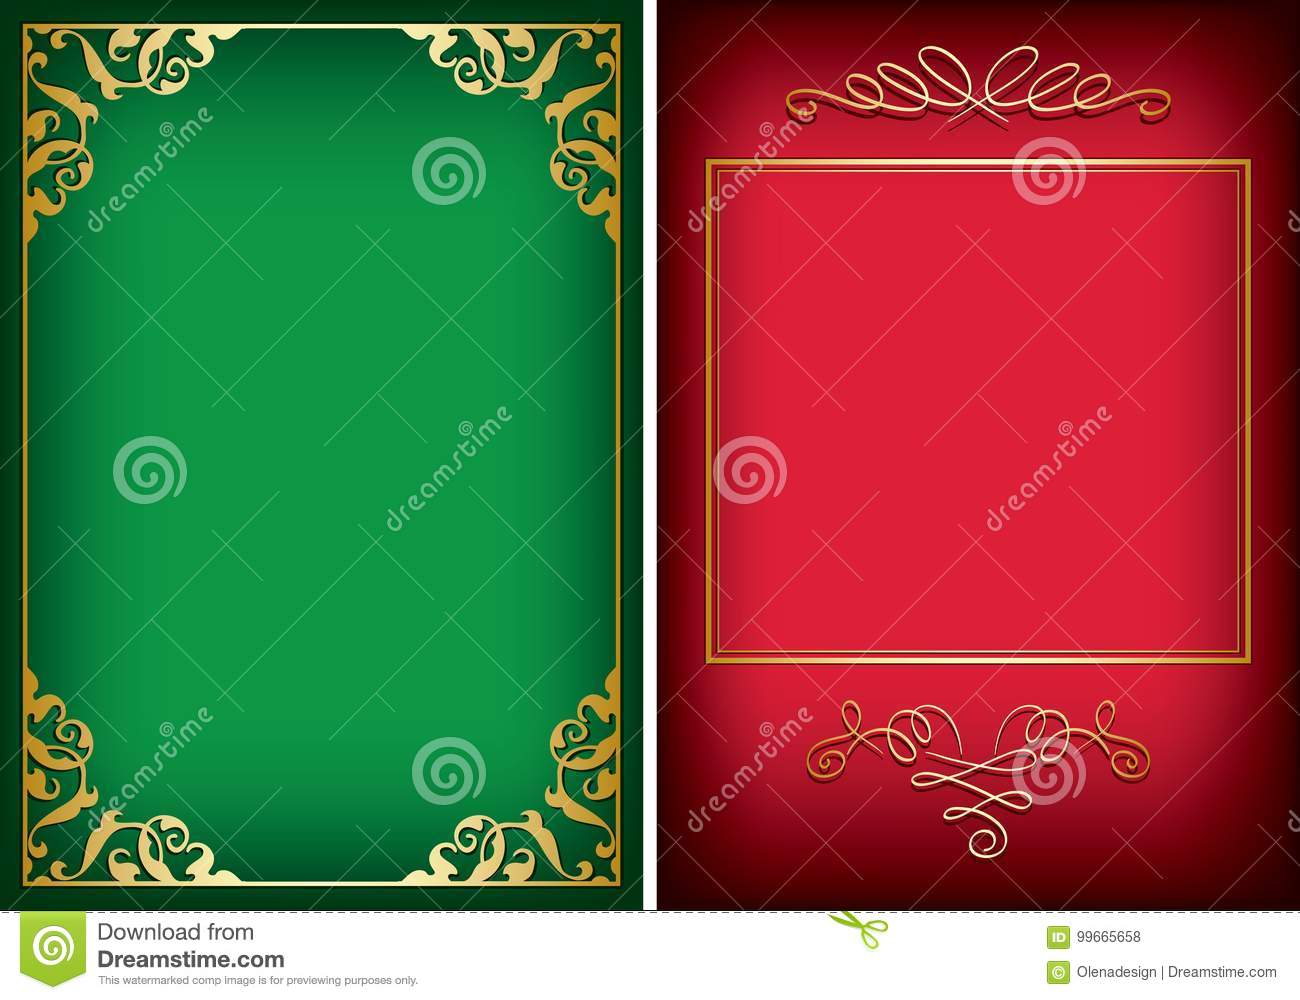 Red and green backgrounds with golden decorative frames - vector